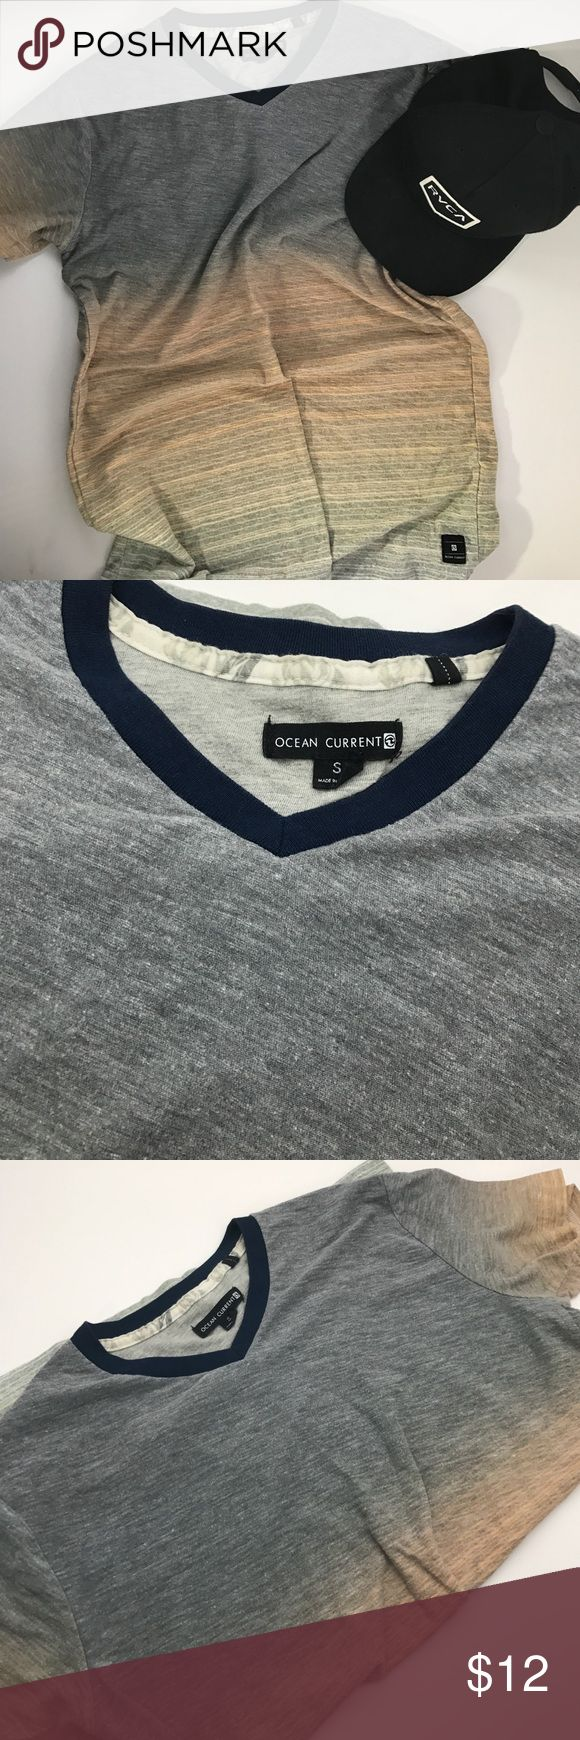 Ocean Current Men's tee Ocean Current brings beach influenced style to your favorite trends. short sleeves. Cotton 60% Polyester 40% blend. All clothes are from a smoke free/pet free home. I accept all reasonable offers and give discounts with bundle orders. Ocean Current Shirts Tees - Short Sleeve